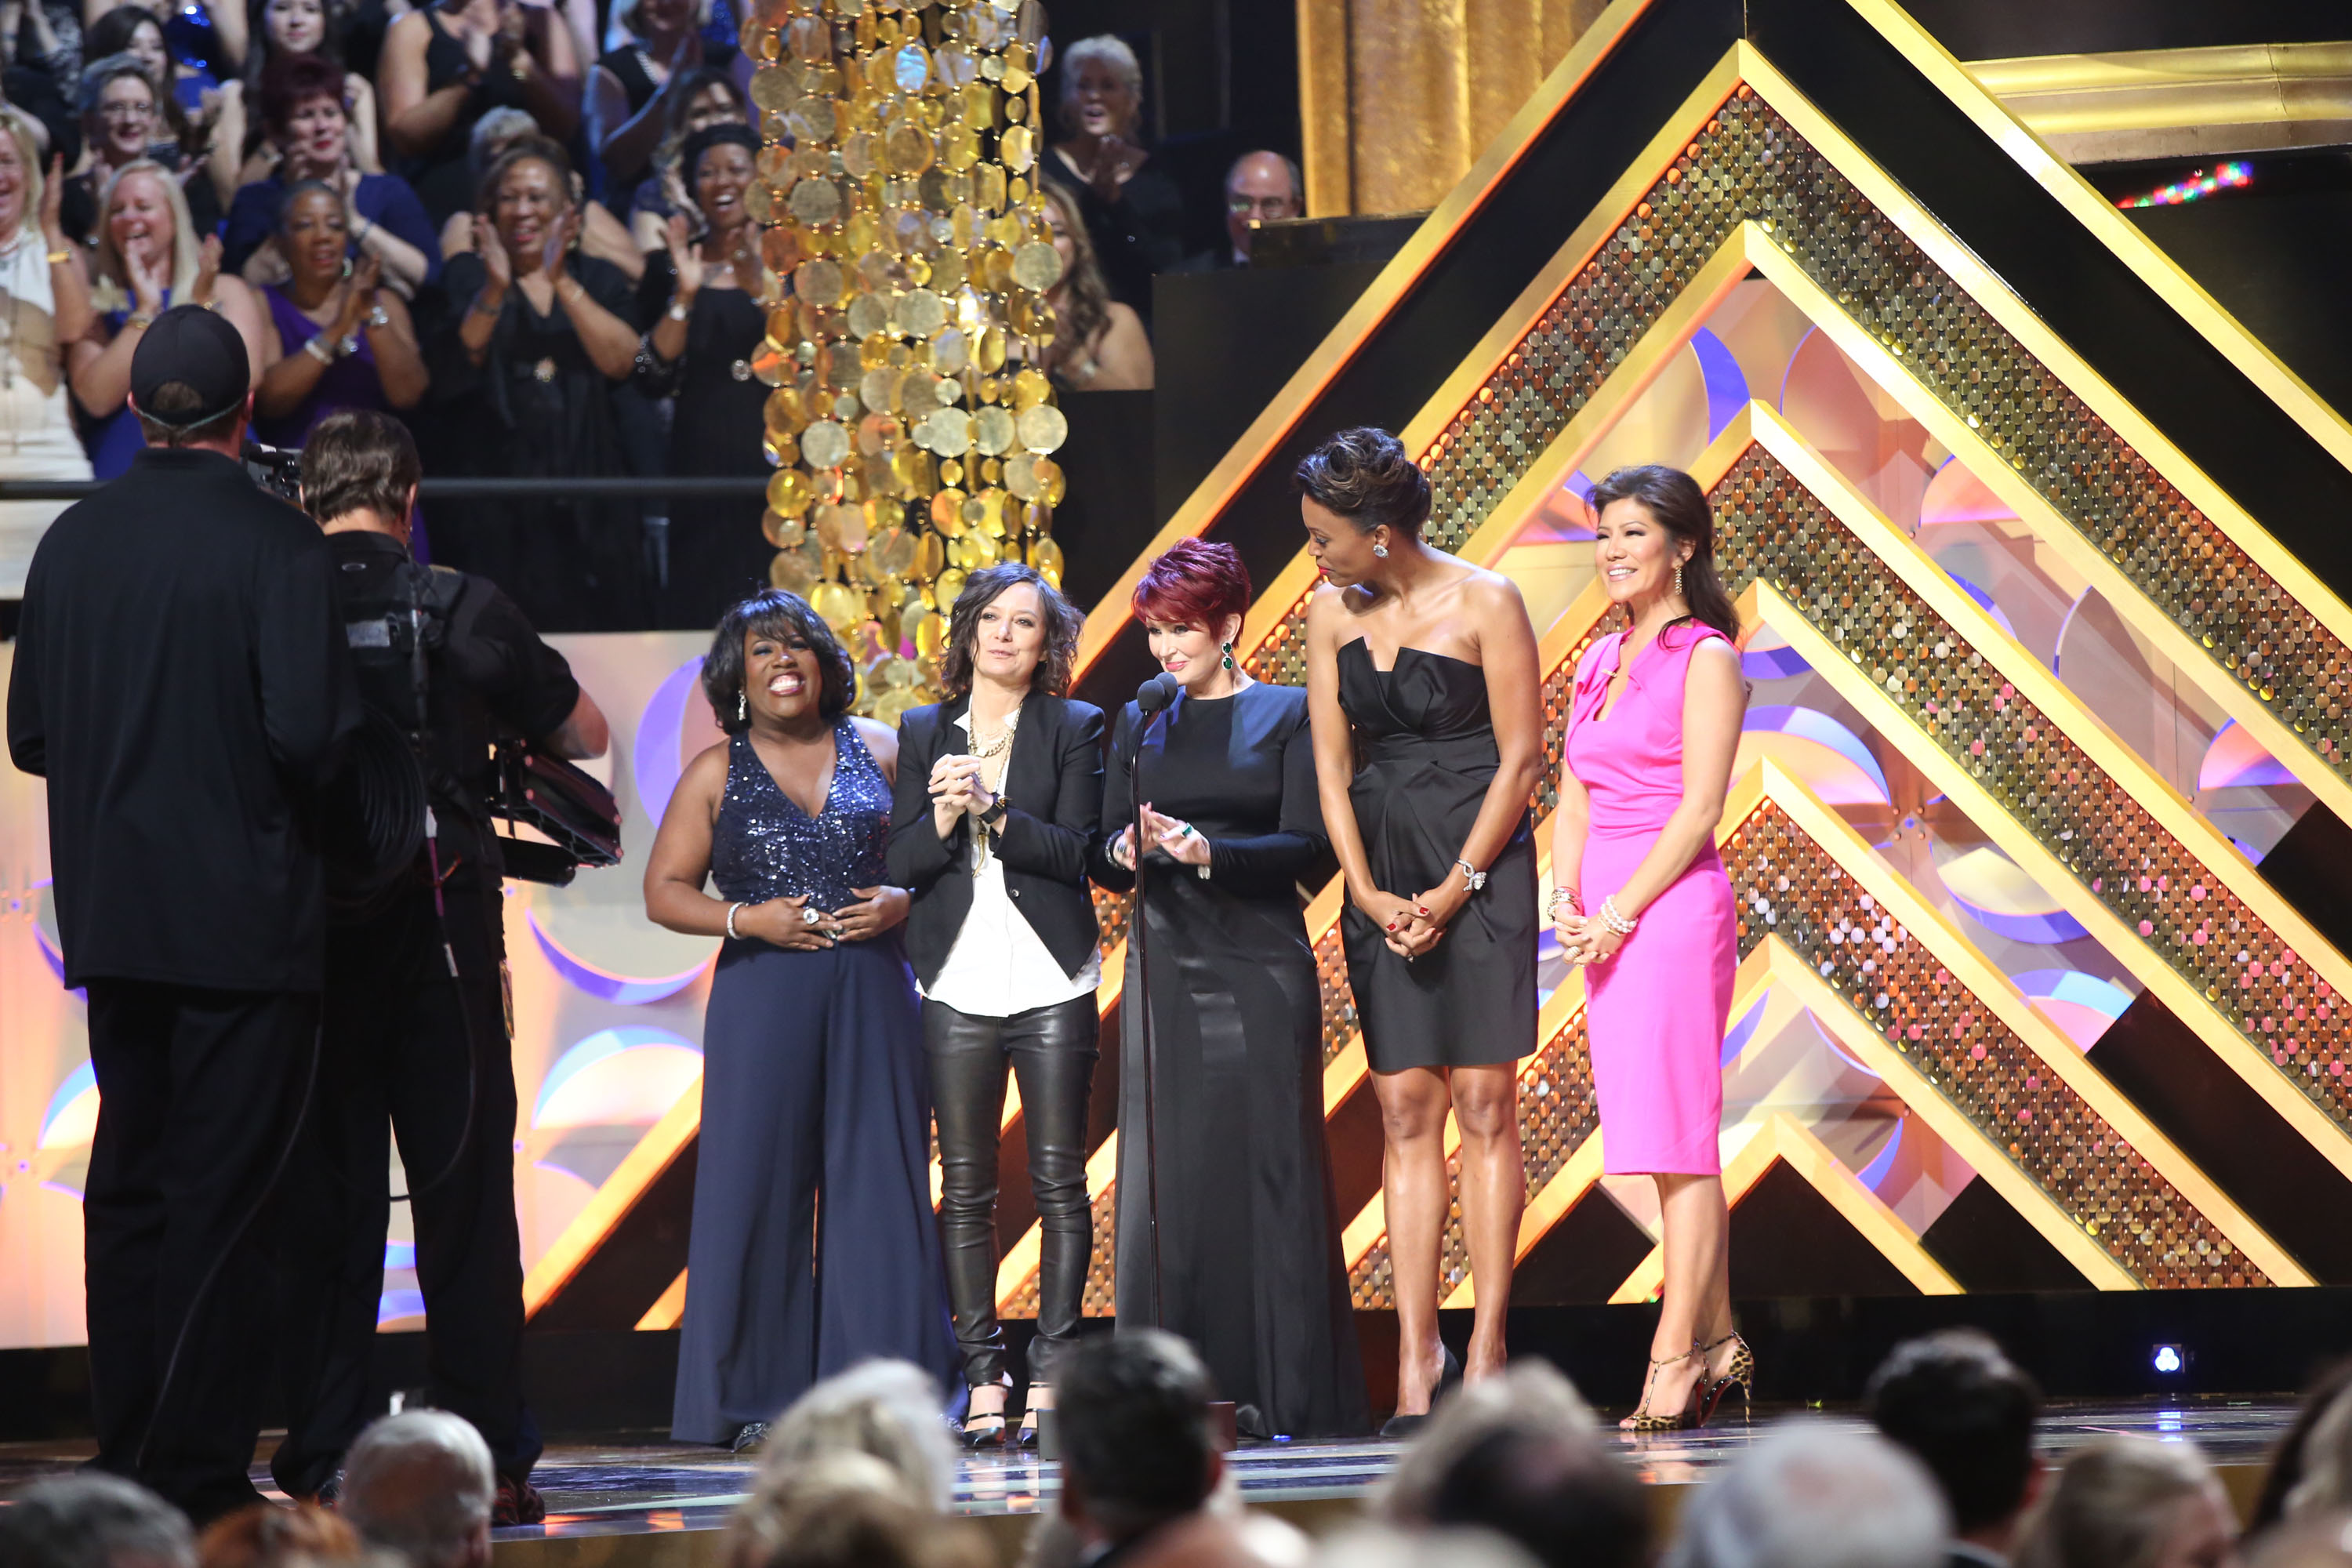 The Ladies On Stage